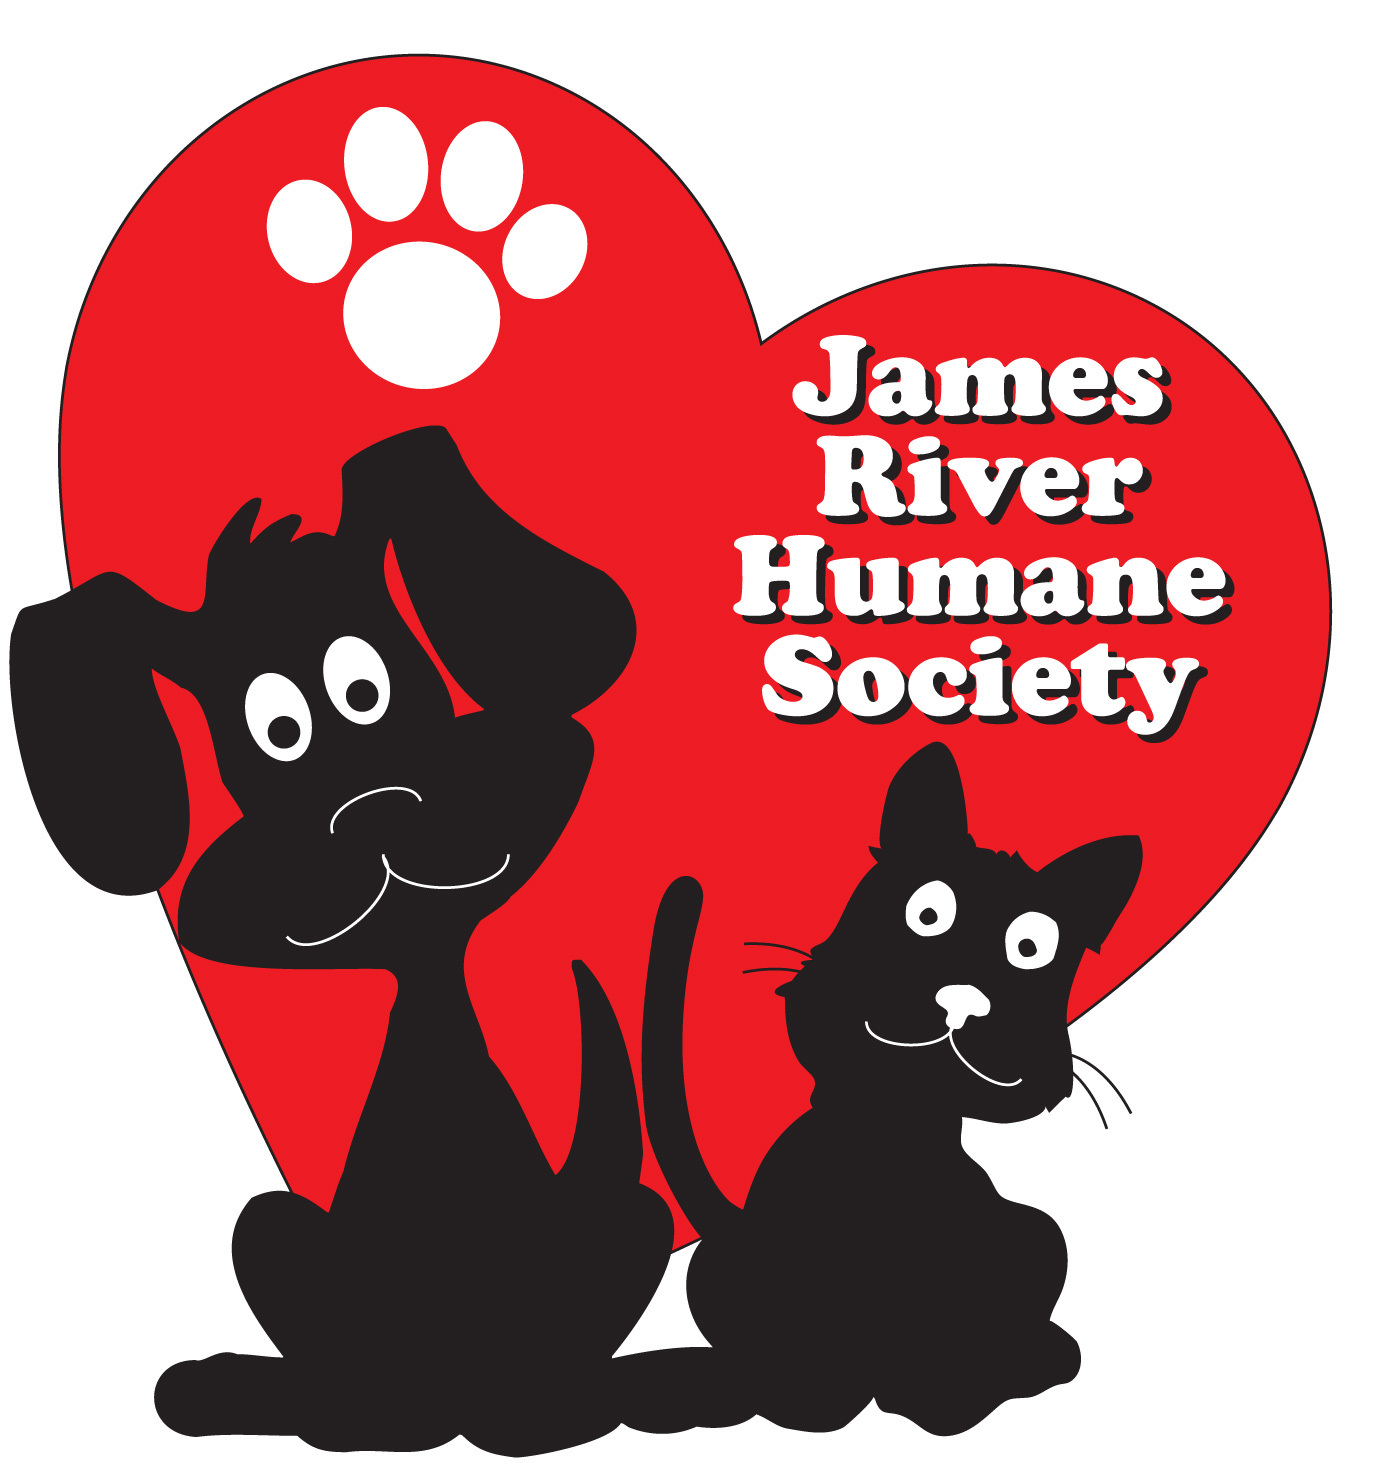 James River Humane Society